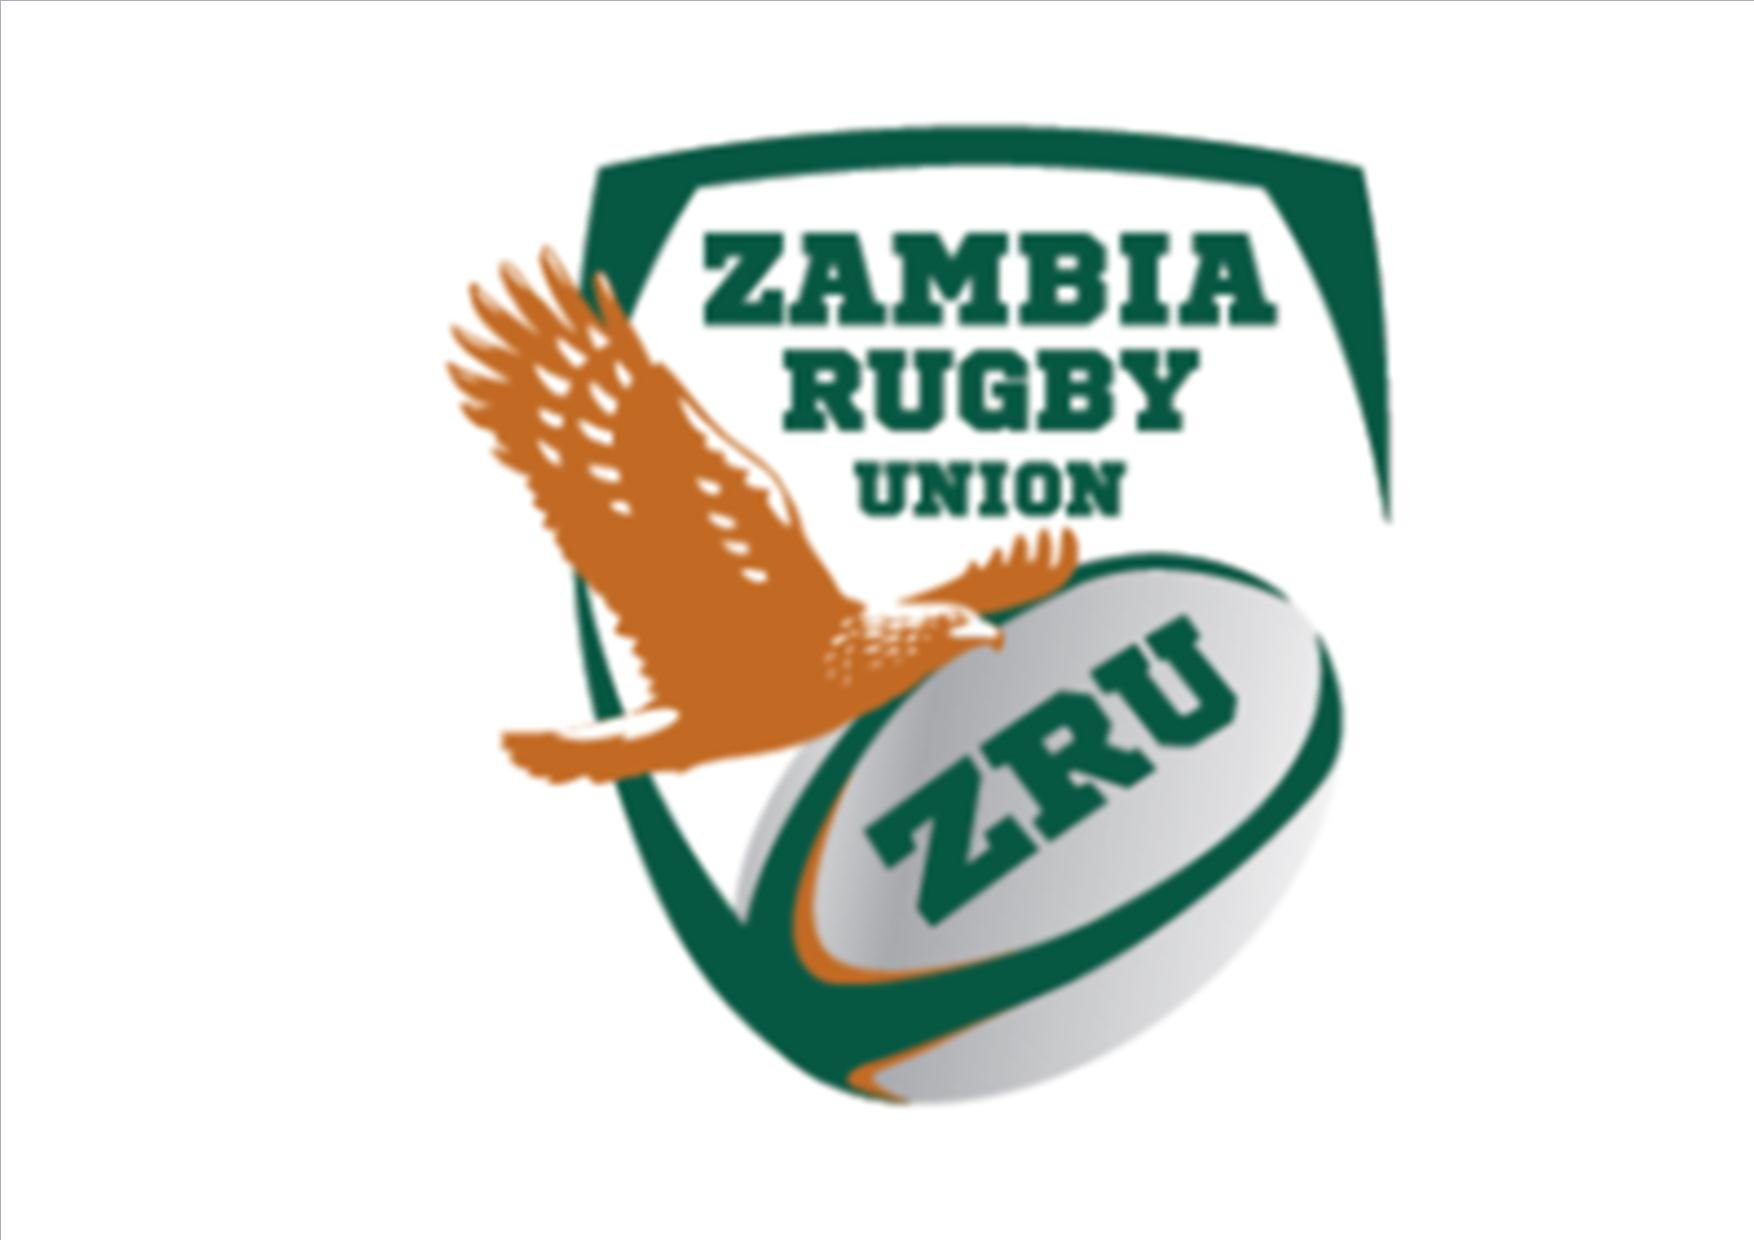 Zambia Rugby uses Covid-19 downtime to implement ScrumIT system